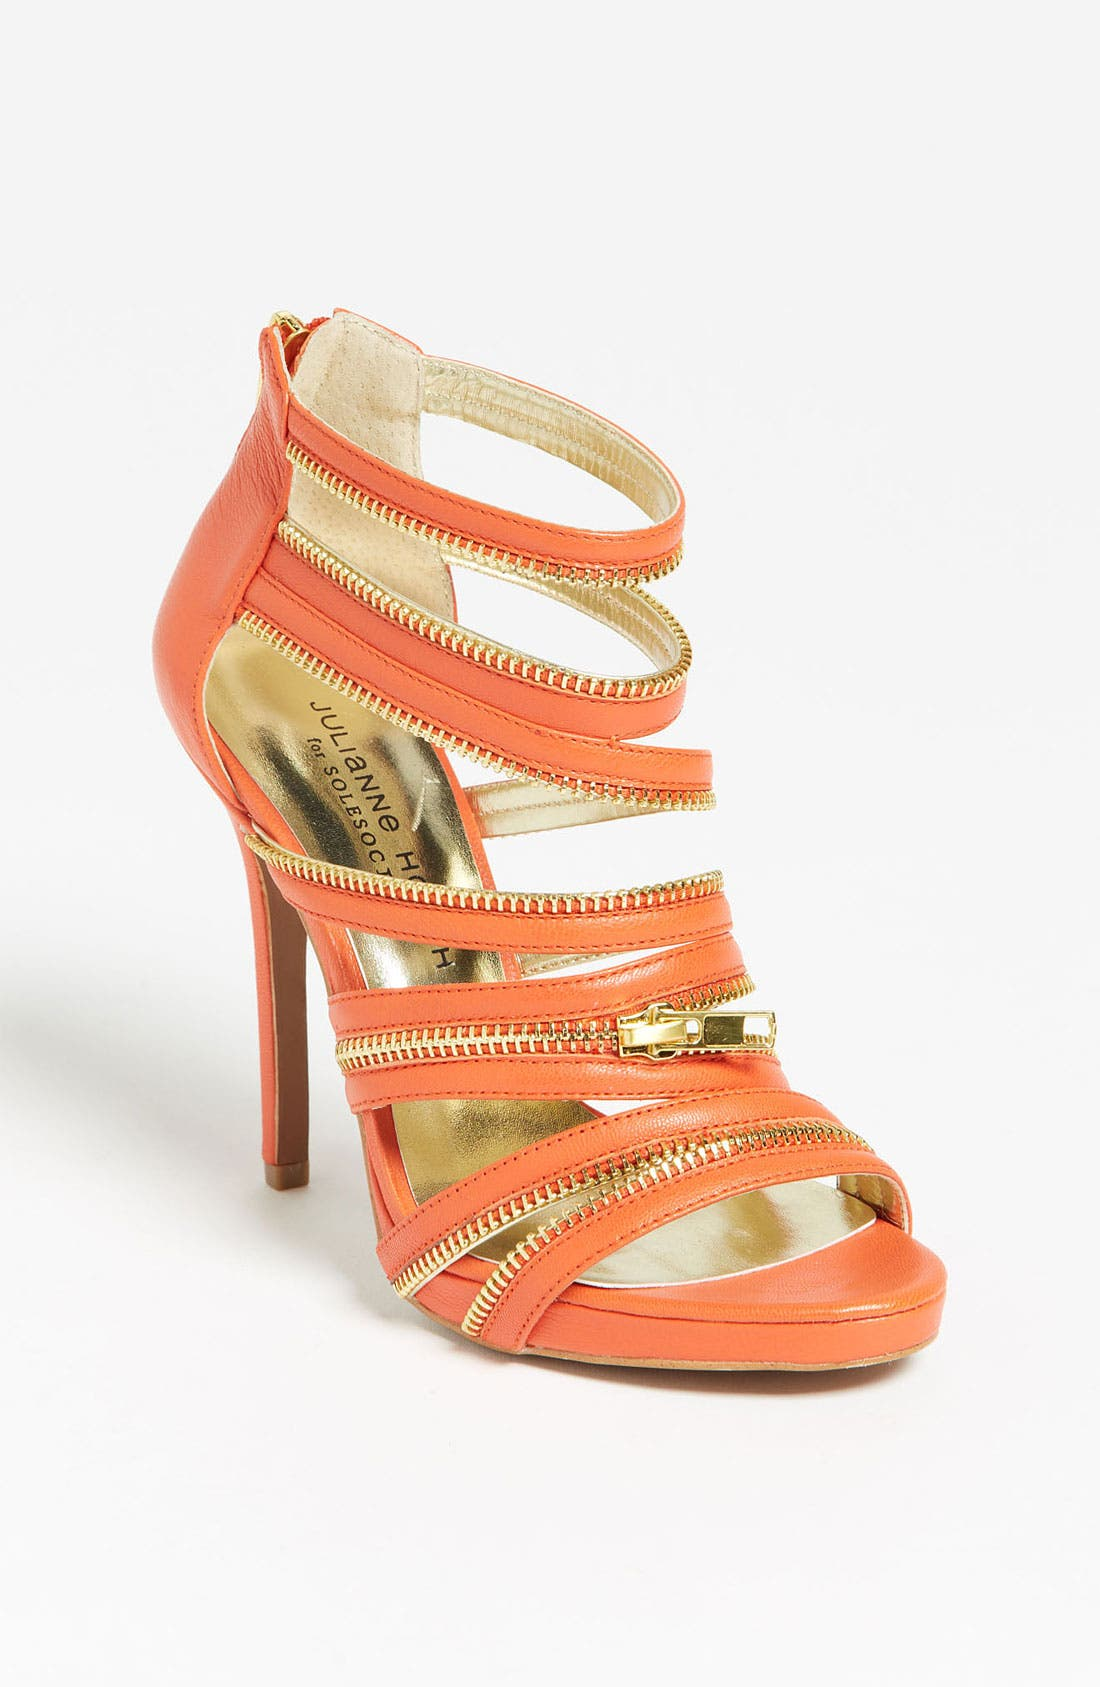 Alternate Image 1 Selected - Julianne Hough for Sole Society 'Makenna' Sandal